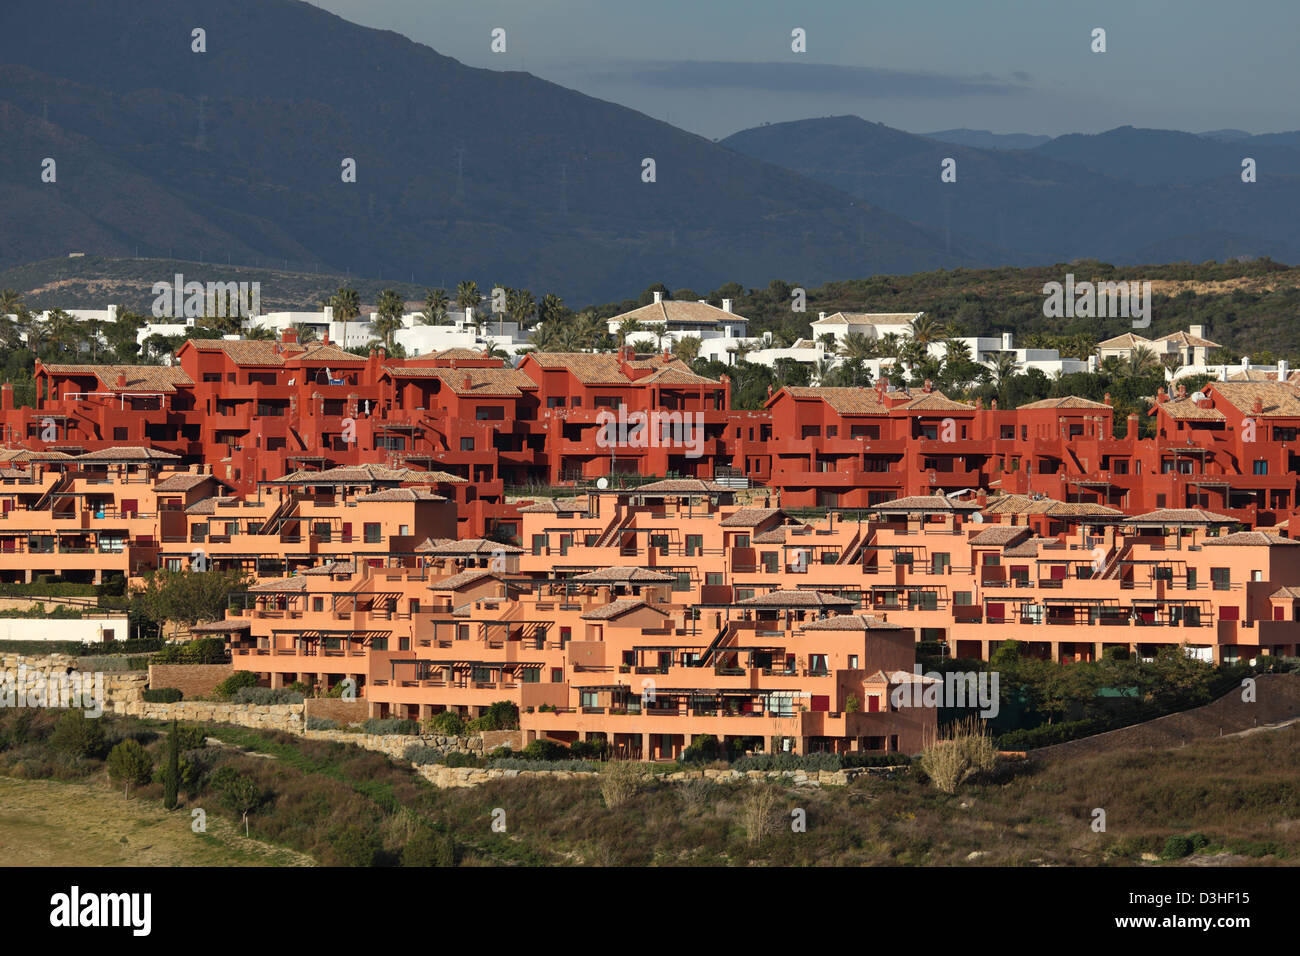 New Urbanisation at the Costa del Sol, Andalusia, Spain - Stock Image